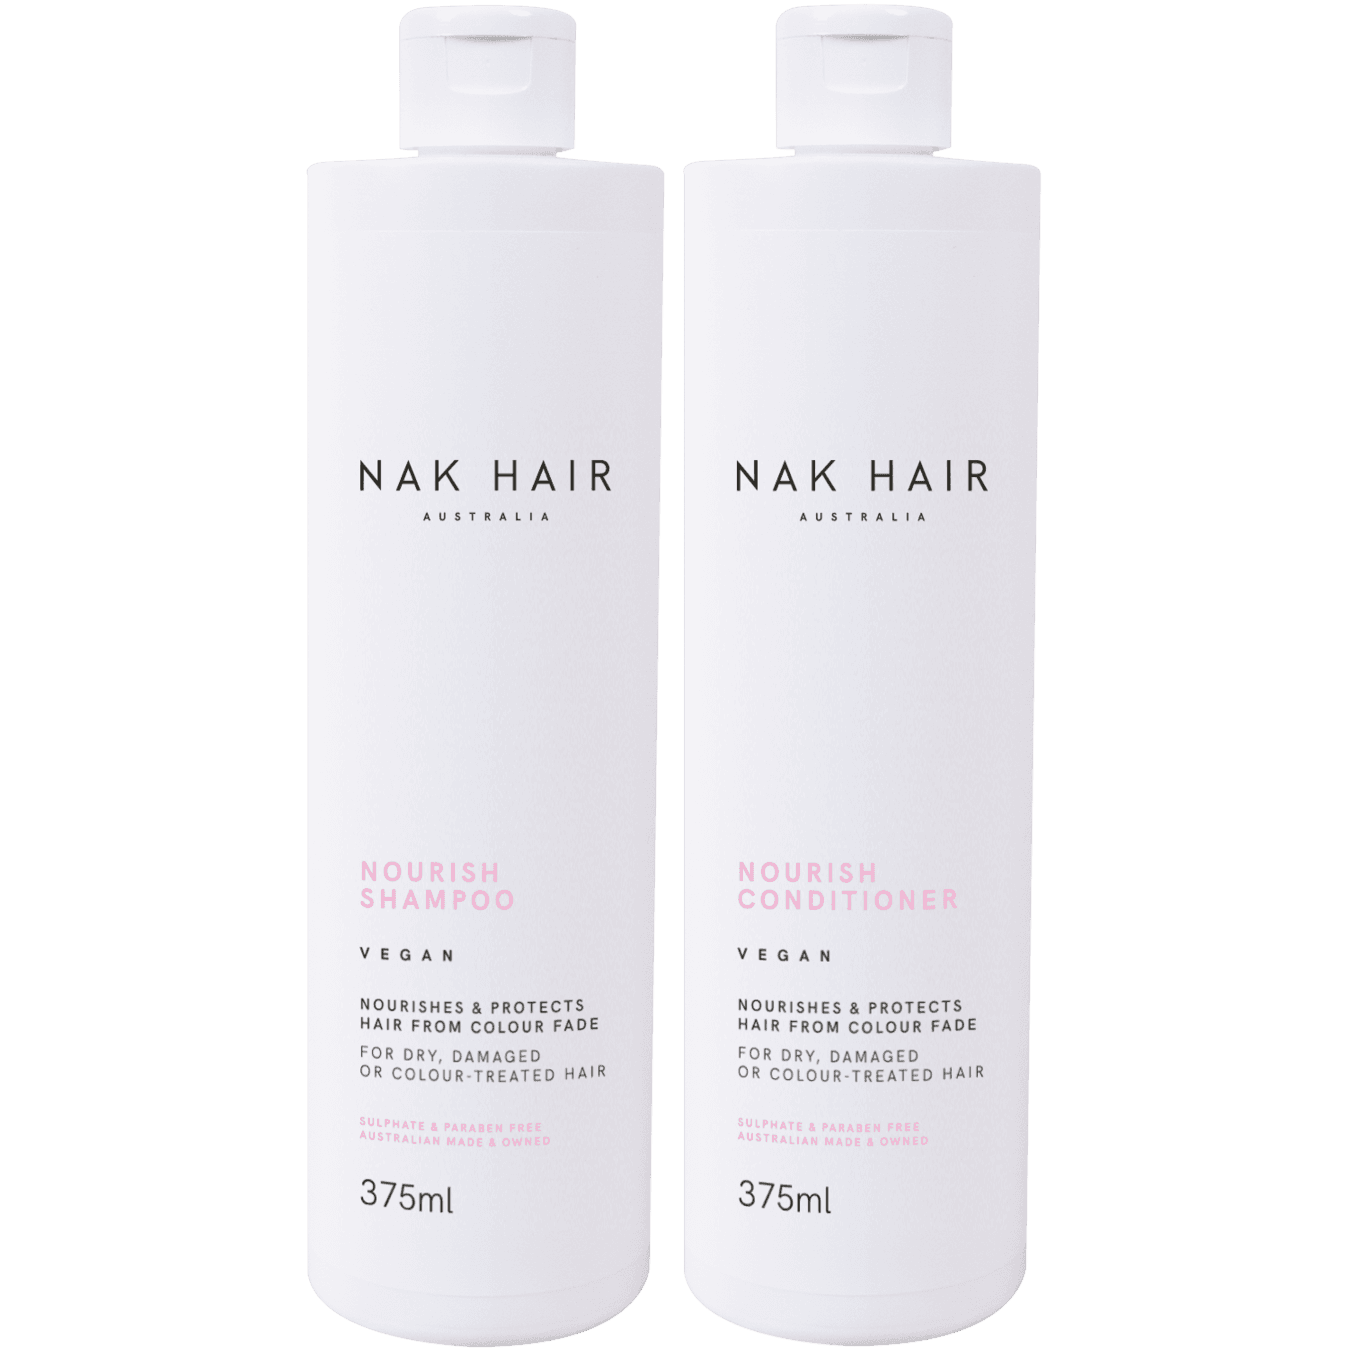 Nourish Shampoo & Conditioner